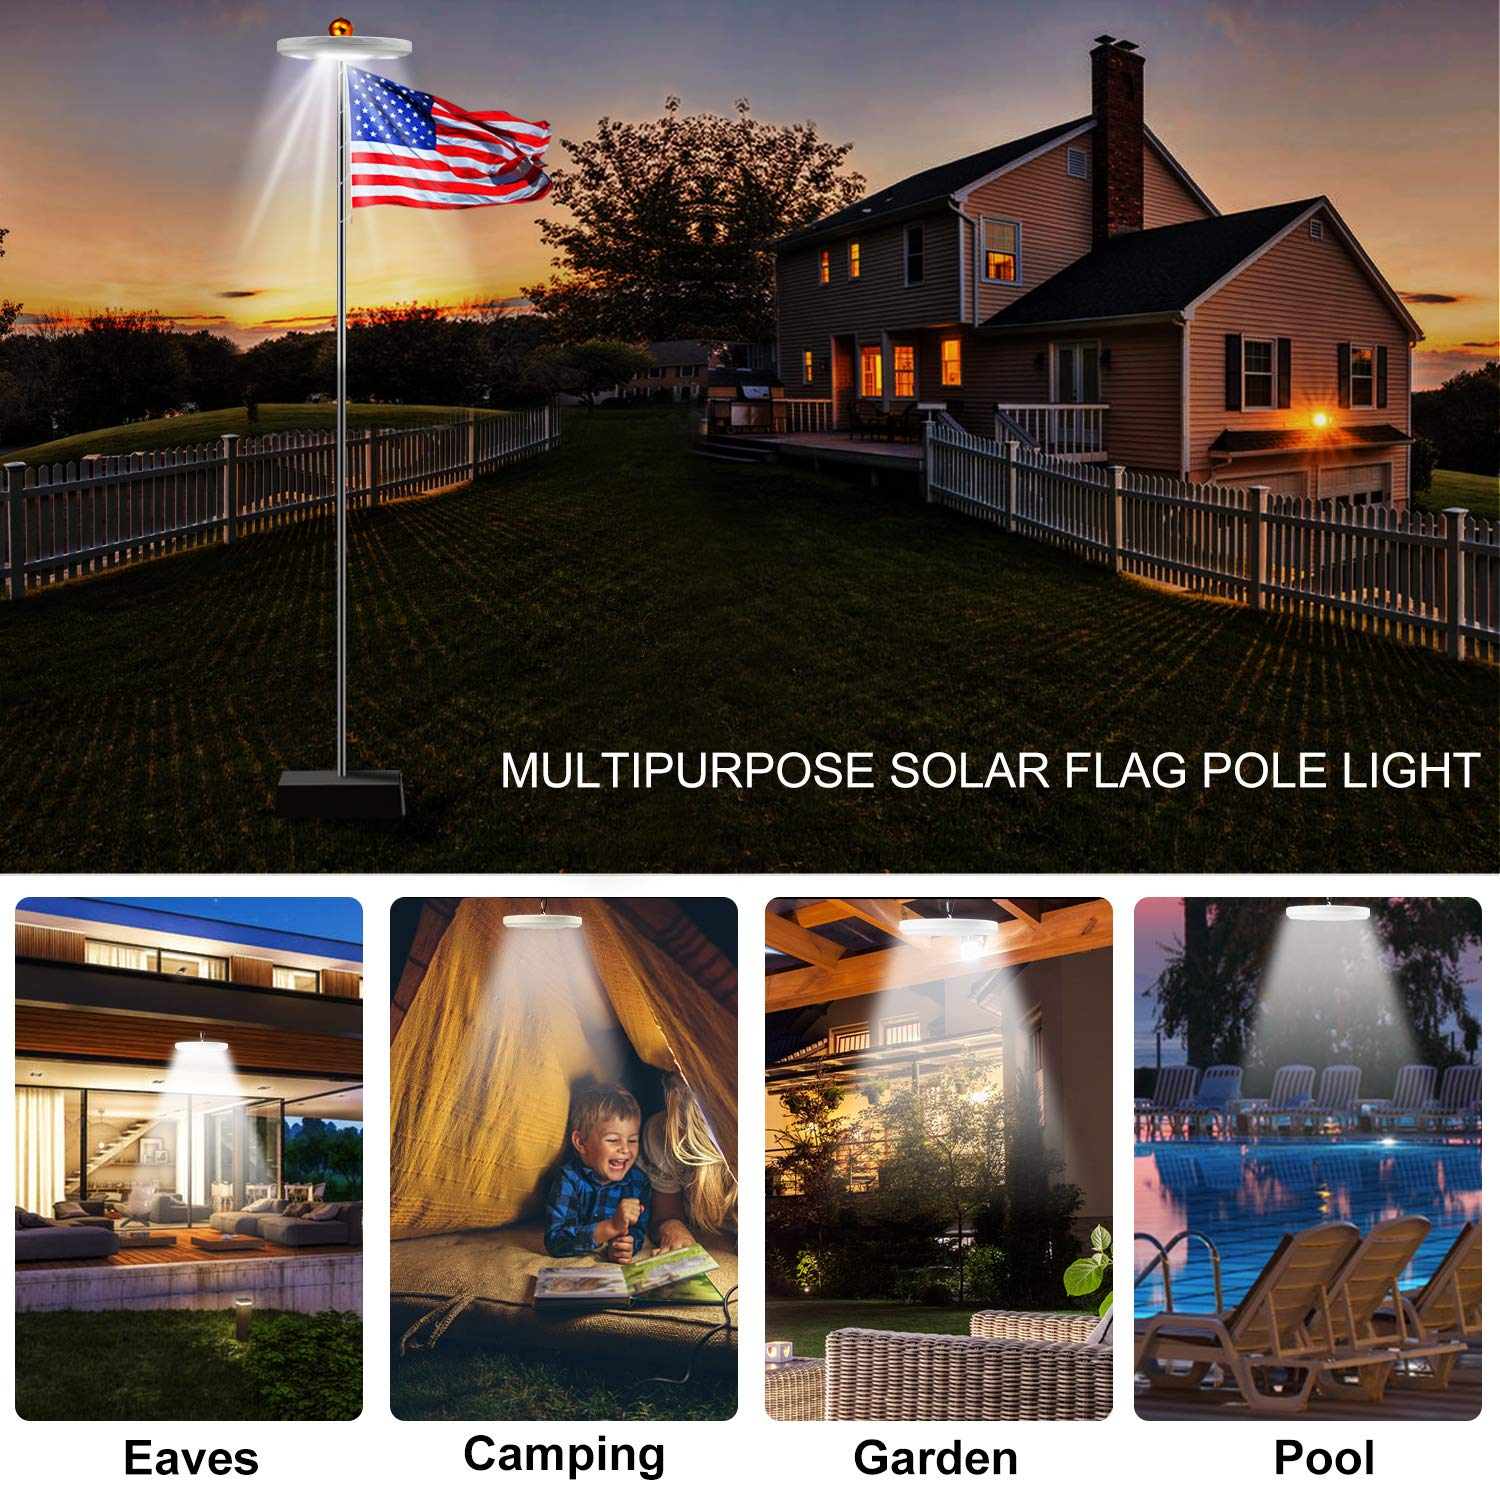 Solar Flag Pole Light 128 LED Light, Super Bright Led Solar Powered Lights on Most 15 to 25Ft Flagpole 100% Flag Coverage, 2 Modes 2500MAH Downlight up flag, IP67 Waterproof Auto On/Off Night Lighting